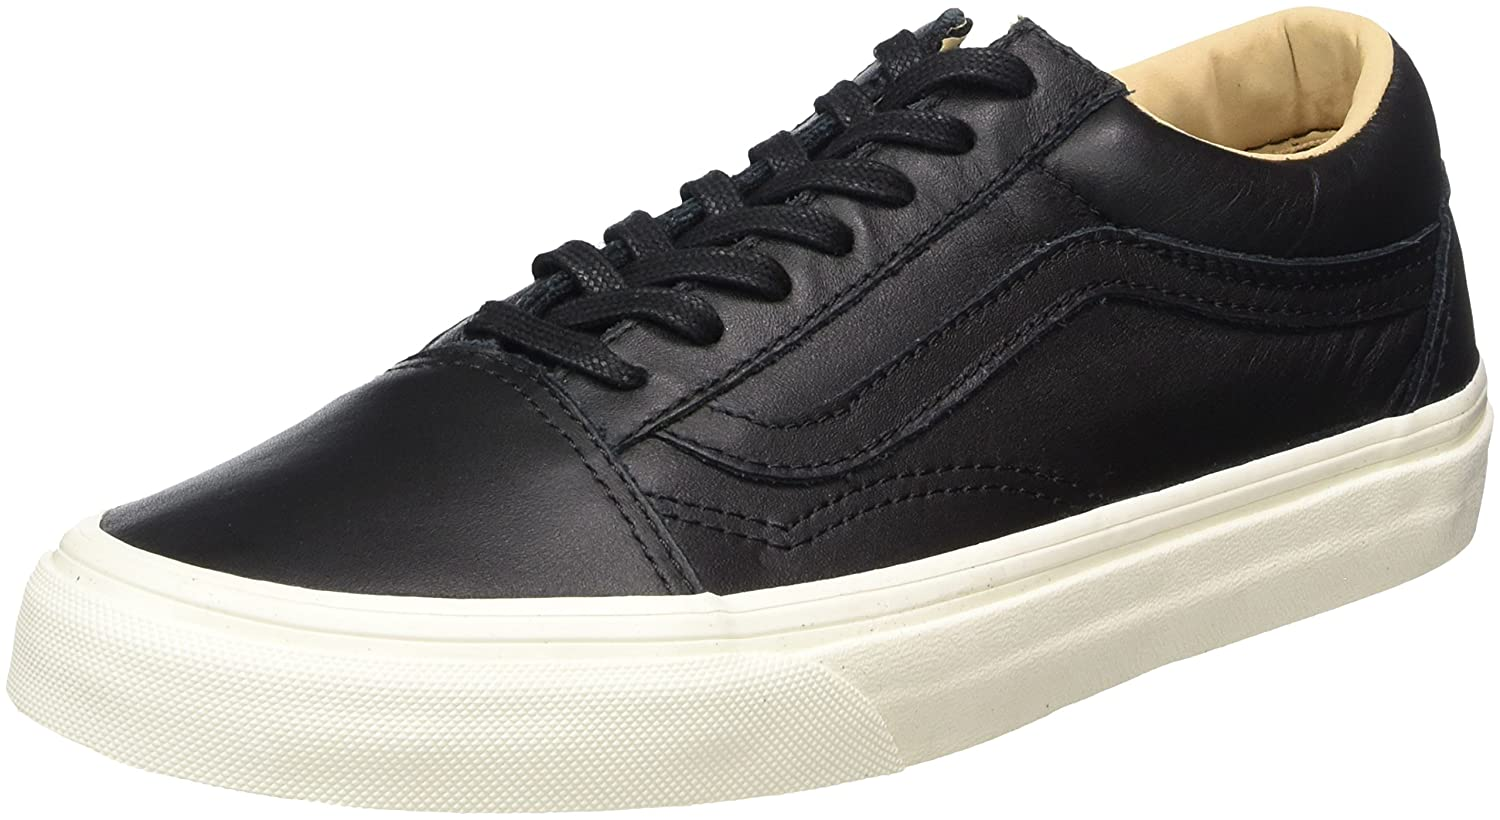 Vans Unisex Old Skool Classic Skate Shoes B06Y5HJ8Y6 6 M US Women / 4.5 M US Men|Lux Leather Black Porcini